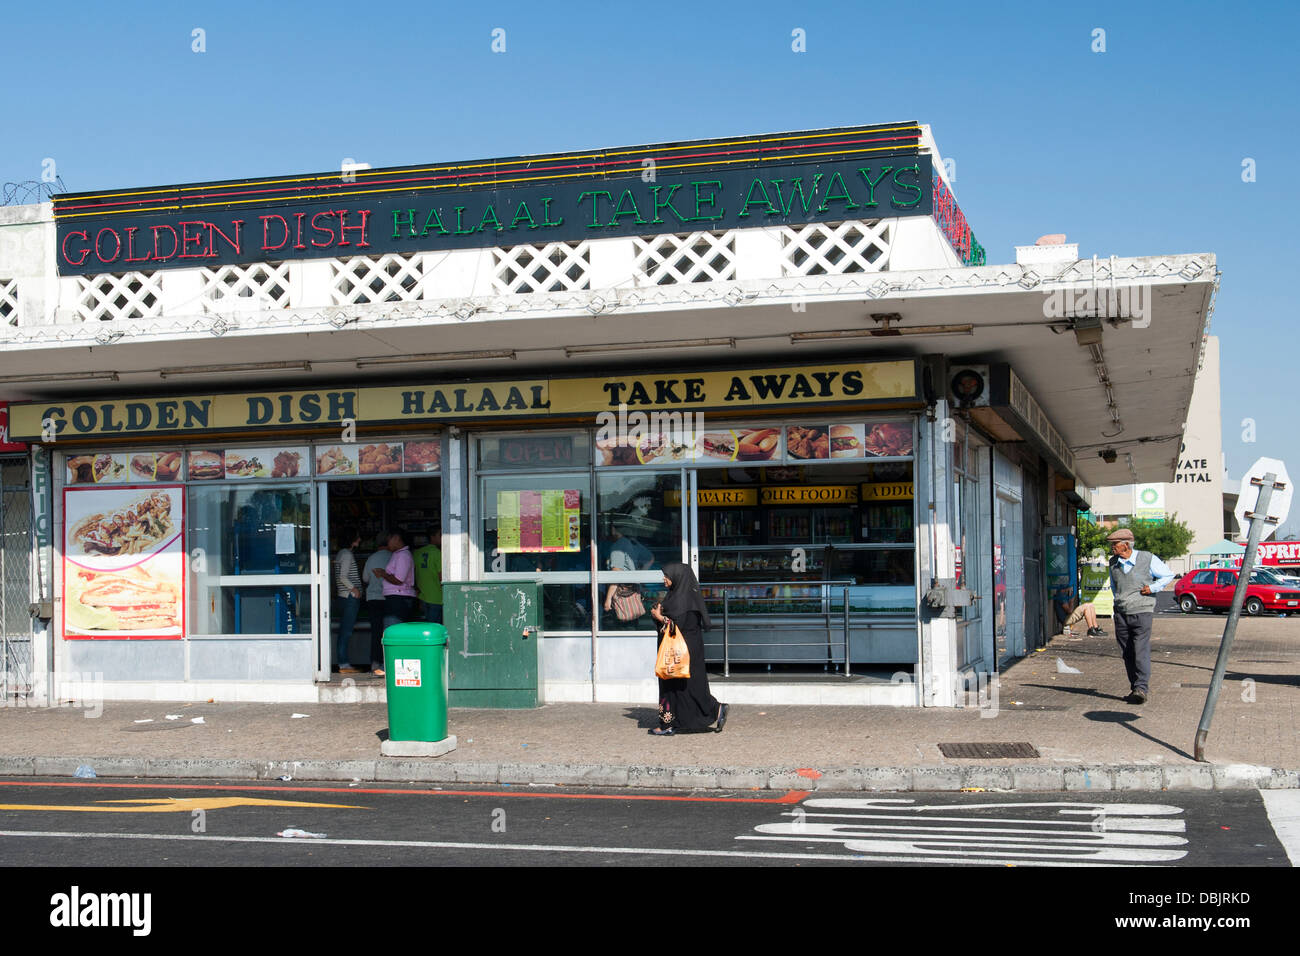 Exterior of the Golden Dish take-away in Athlone, Cape Town, South Africa. - Stock Image